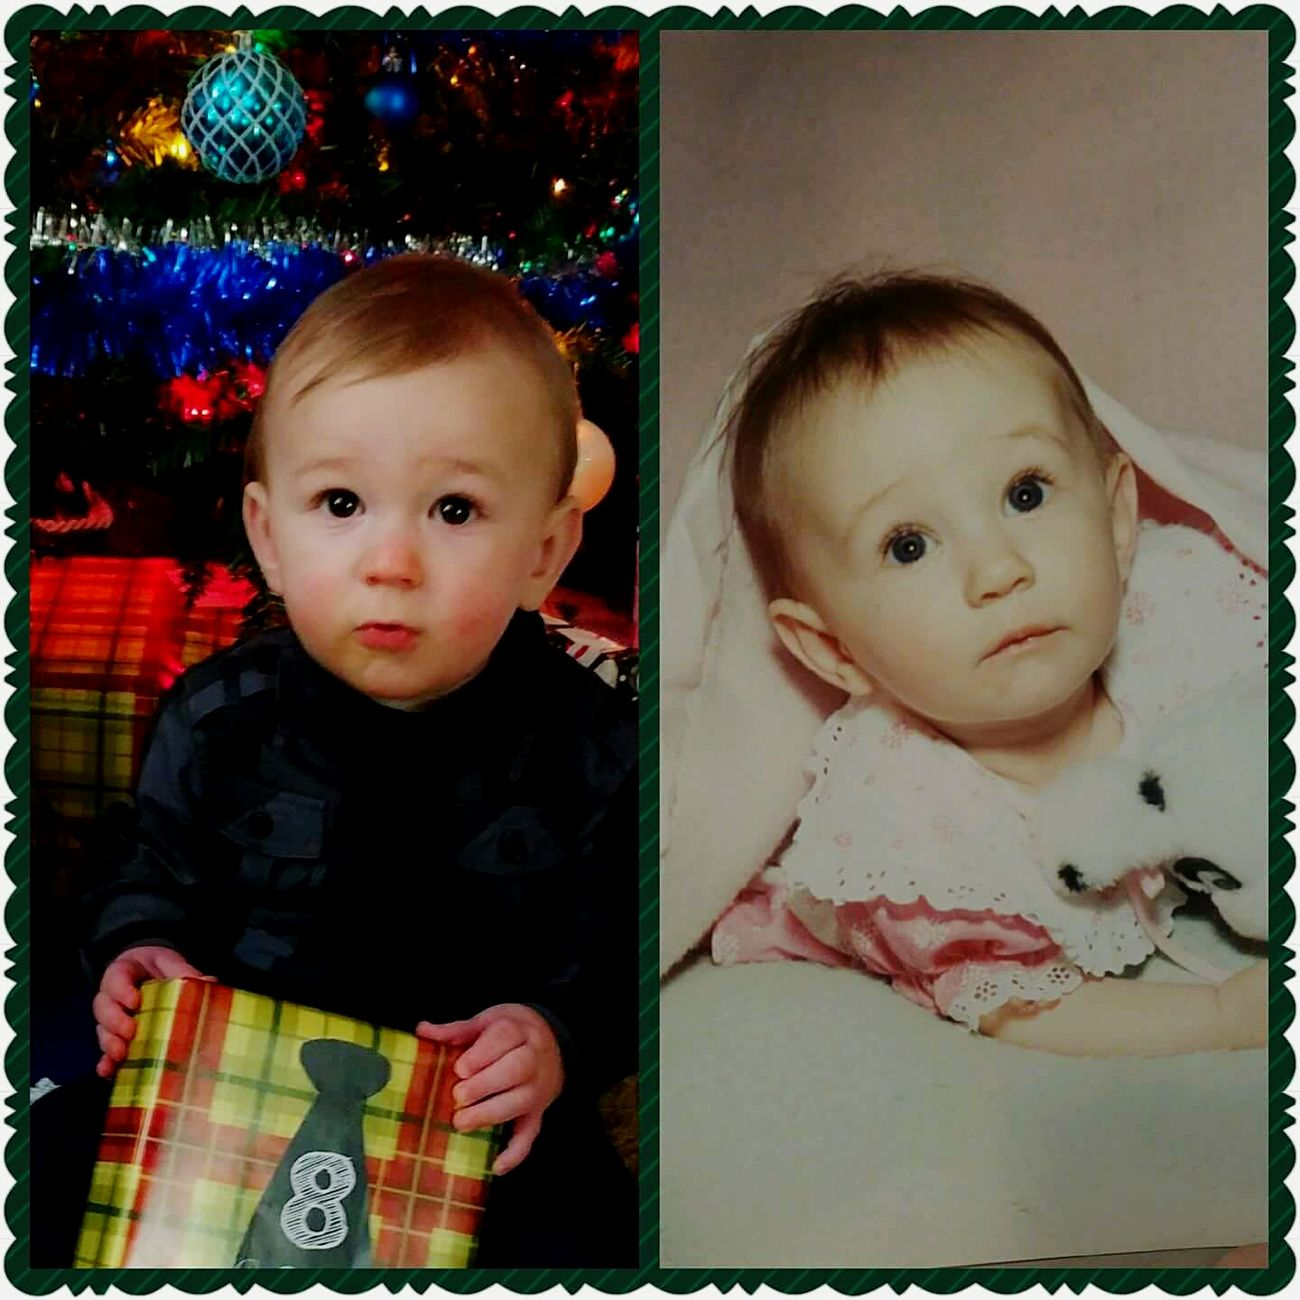 I know it's been a minute since I posted.. But having my grandson 4-5 days of the week gets me tired.. But I love it....Silas (on the left) and my daughter, on the right, when she was 2mths old.. I was really surprised that they looked so much alike... Portrait Looking At Camera Childhood Real People People Close-up Day Hanging Out EyeEm The Week On Eyem Taking Photos Not Strange To Me Hello World Check This Out Eye Em Around The World I'm Happy Eyeemphoto Two Is Better Than One Posing Smiling Grandsons Love